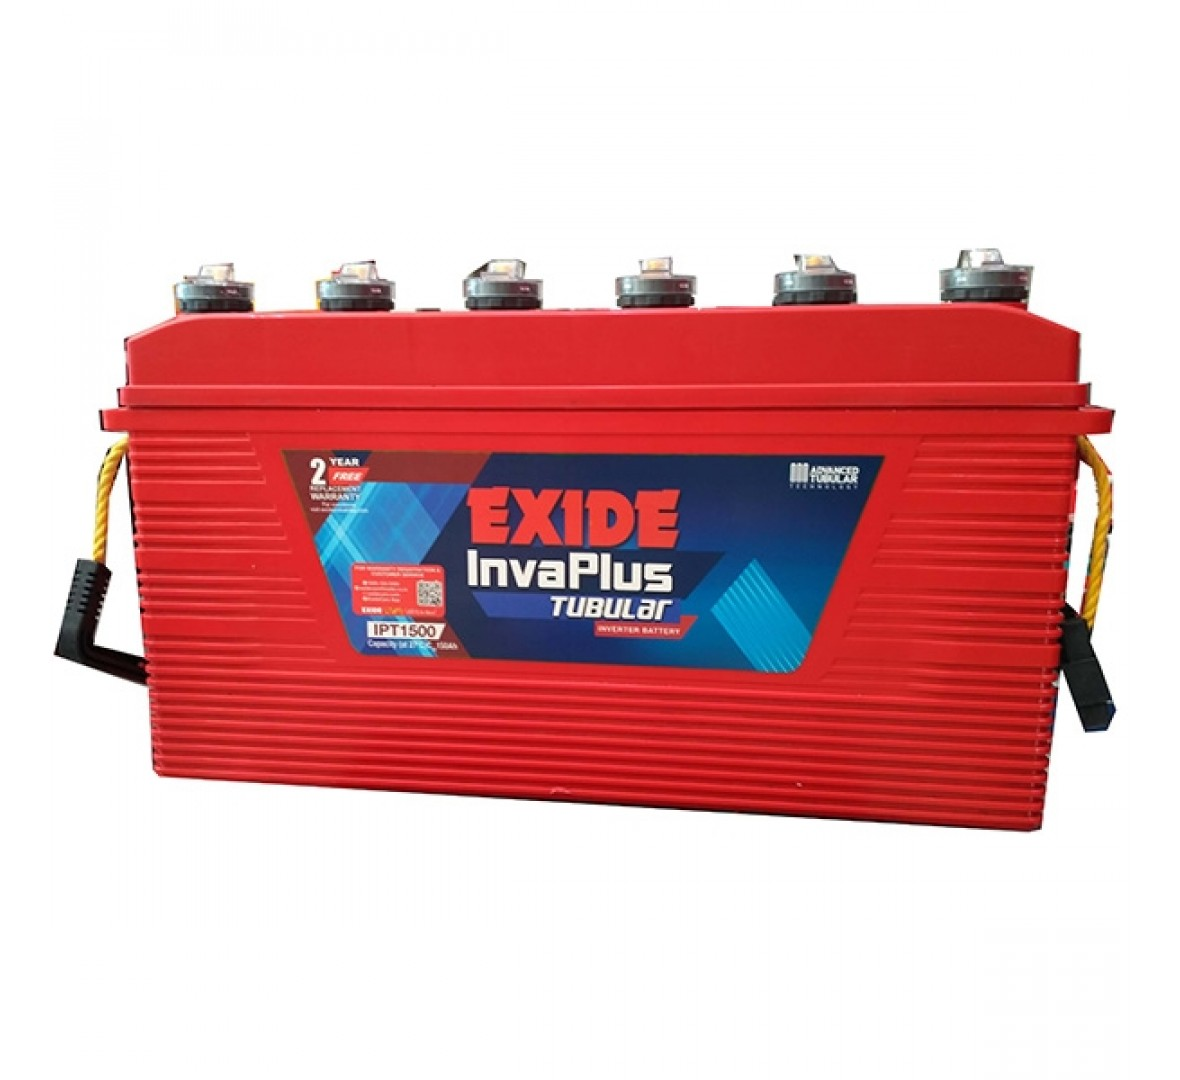 Exide Invaplus Ipt1000 100ah Inverter Battery Buy Exide